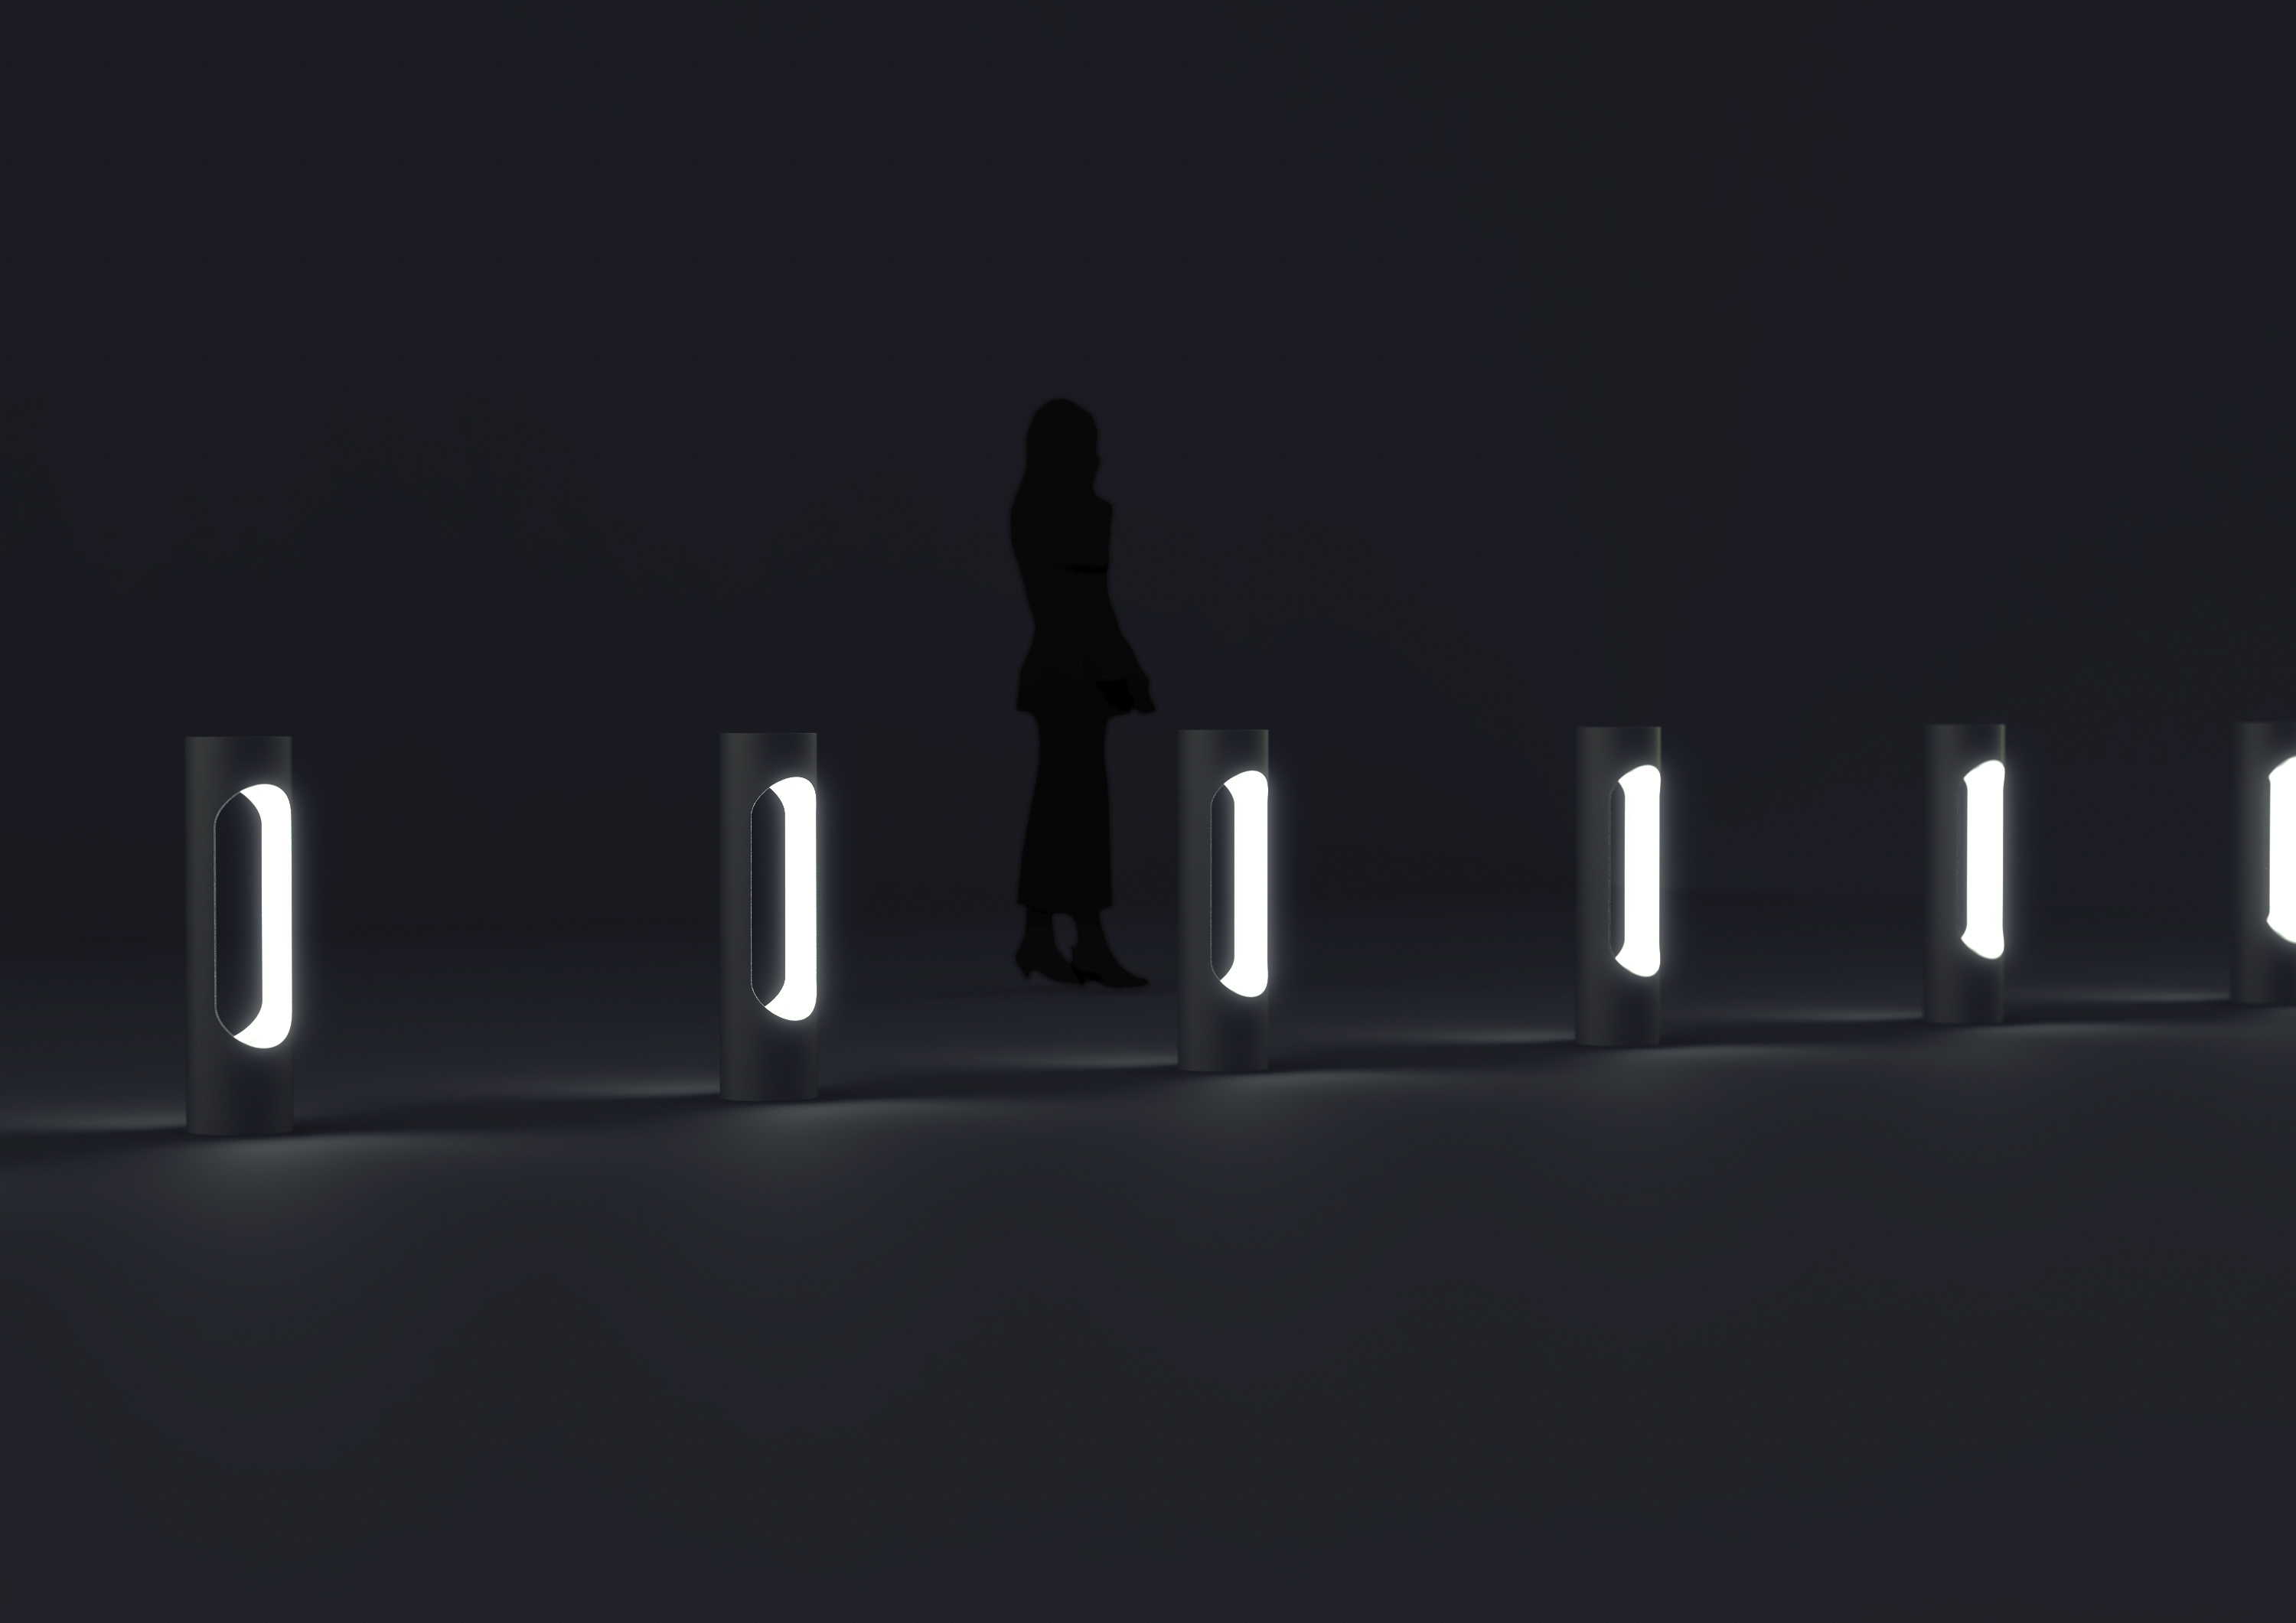 gerhardt kellermann_bollard_featured